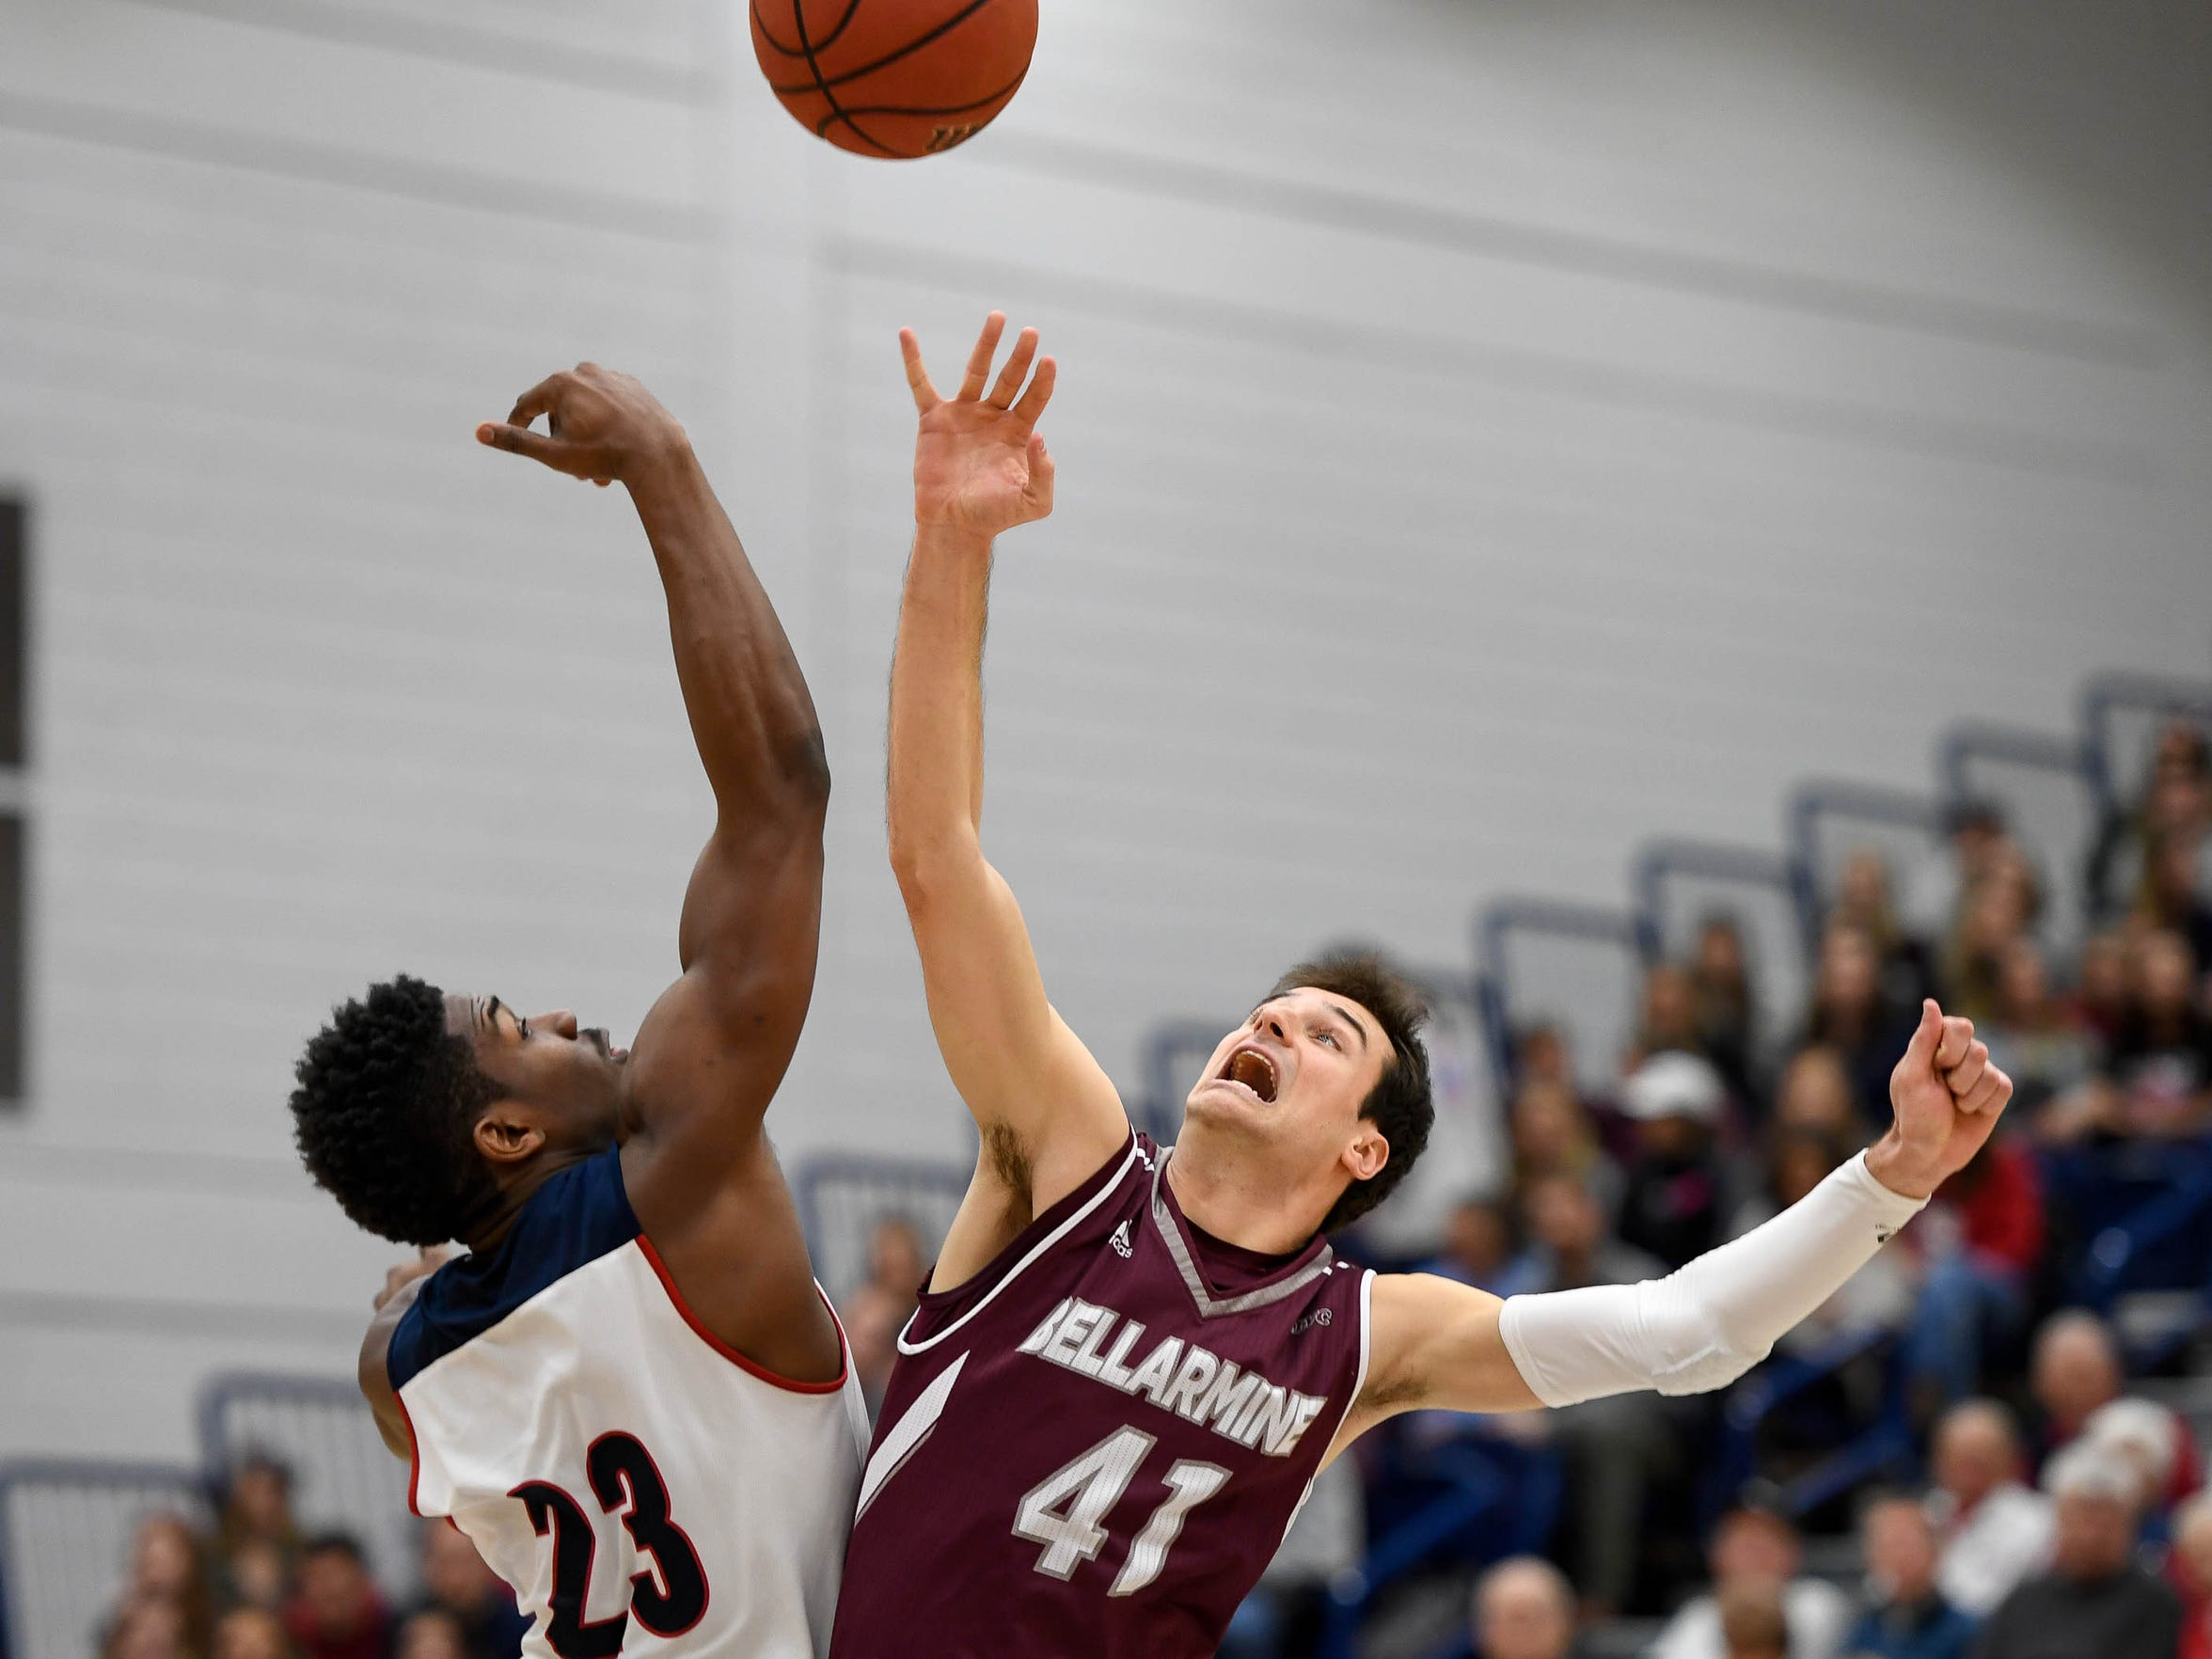 University of Southern Indiana's DayJar Dickson (23) and Bellarmine's Adam Eberhard (41) tip off as the USI Screaming Eagles play the Bellarmine Knights at USI's Physical Activities Center Saturday, February 10, 2018.